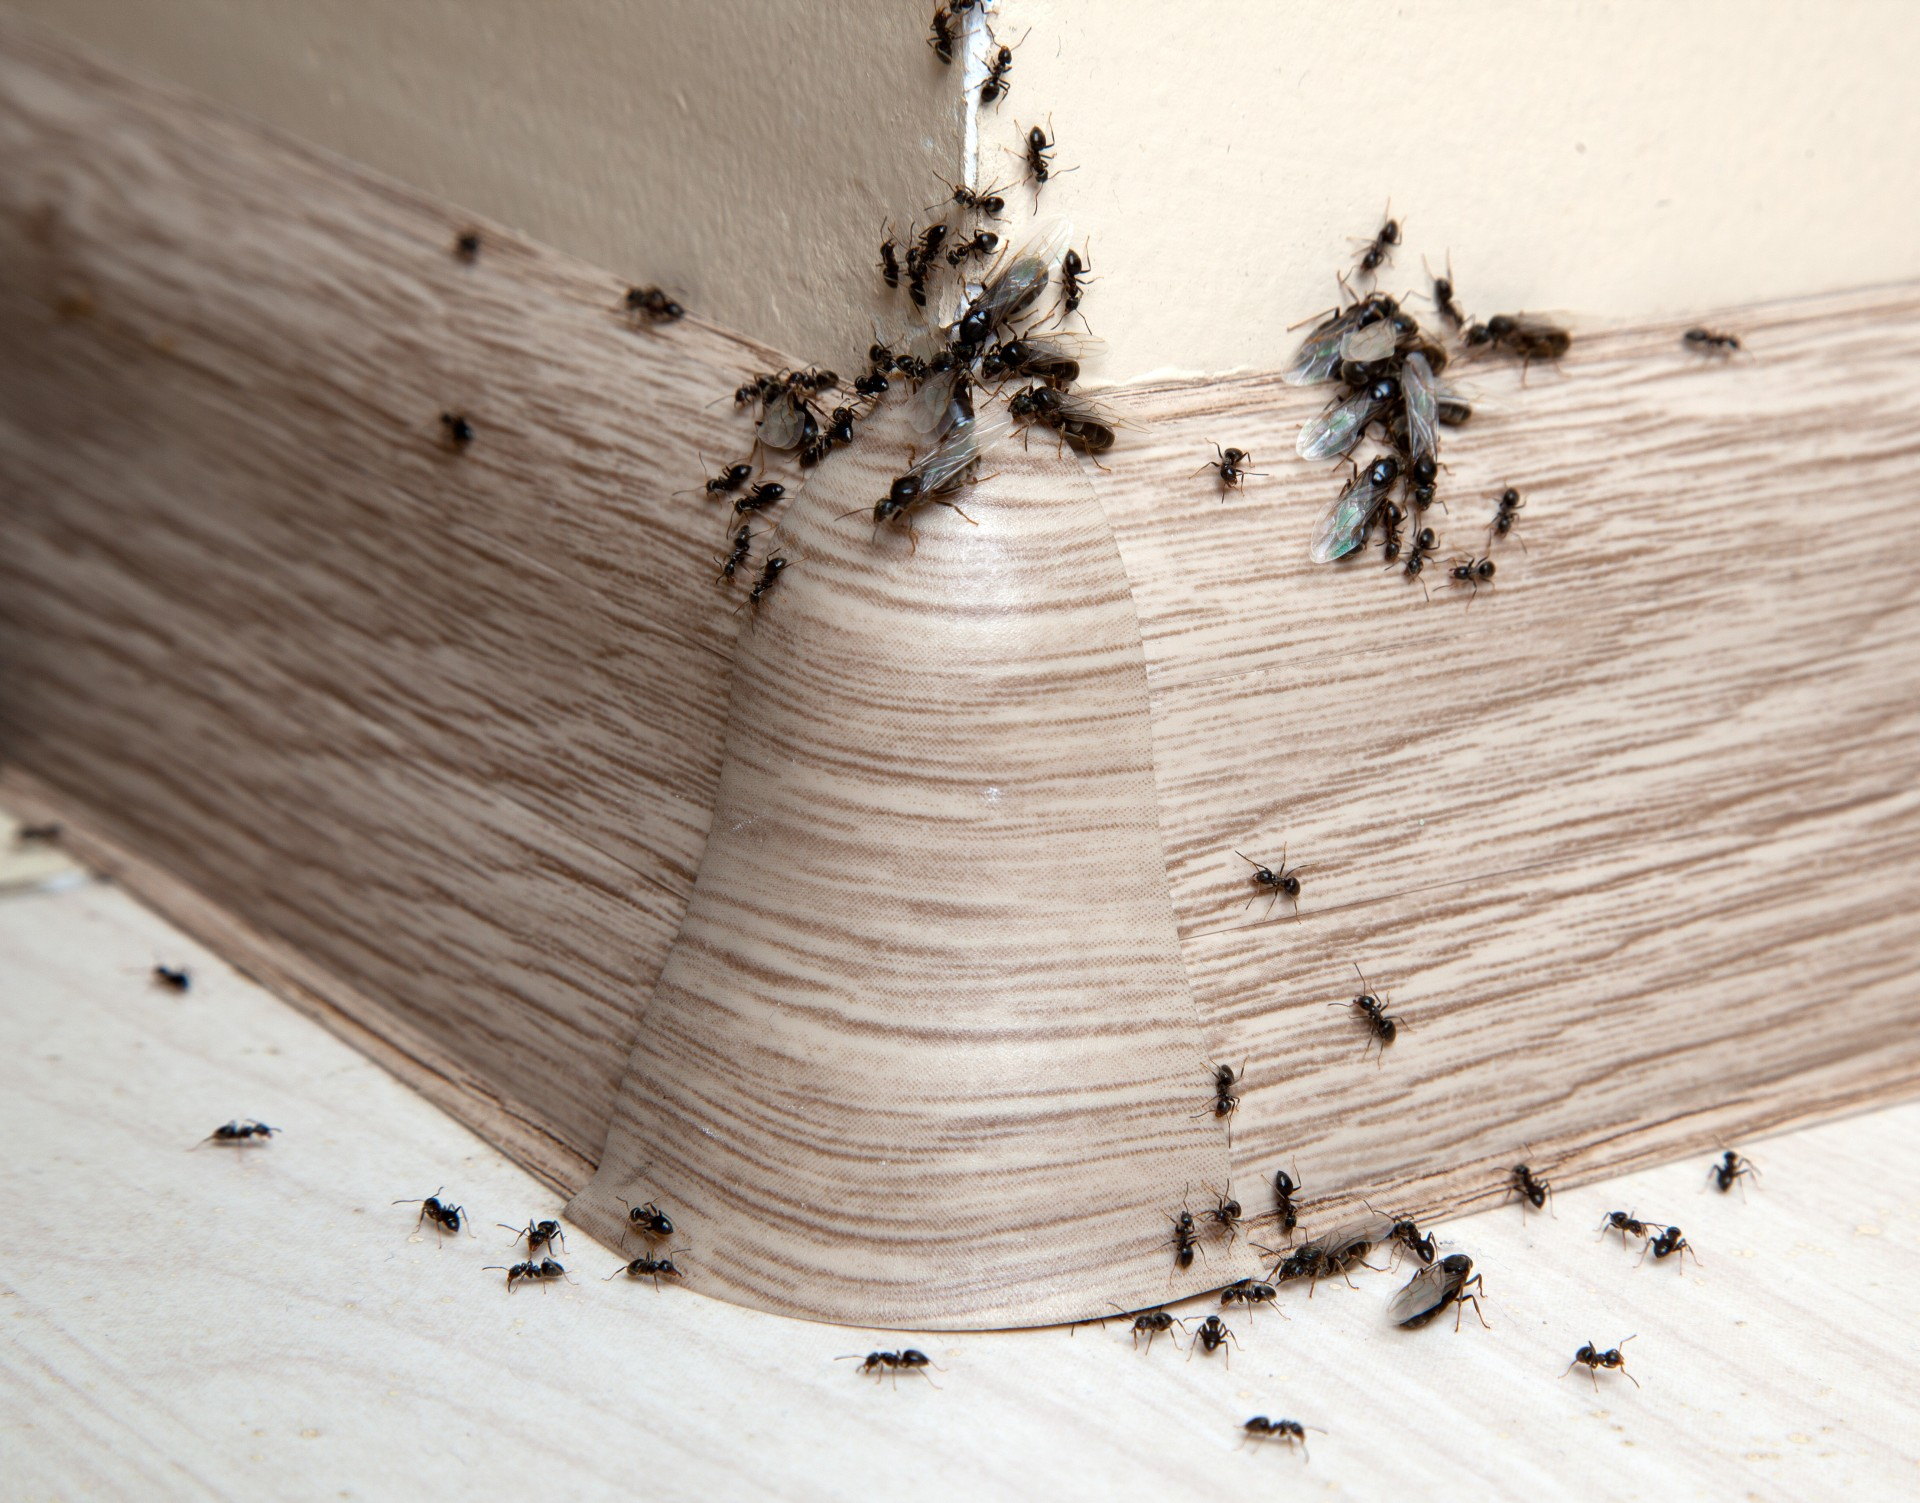 Ant Infestation, Pest Control in South Croydon, Sanderstead, Selsdon, CR2. Call Now 020 8166 9746